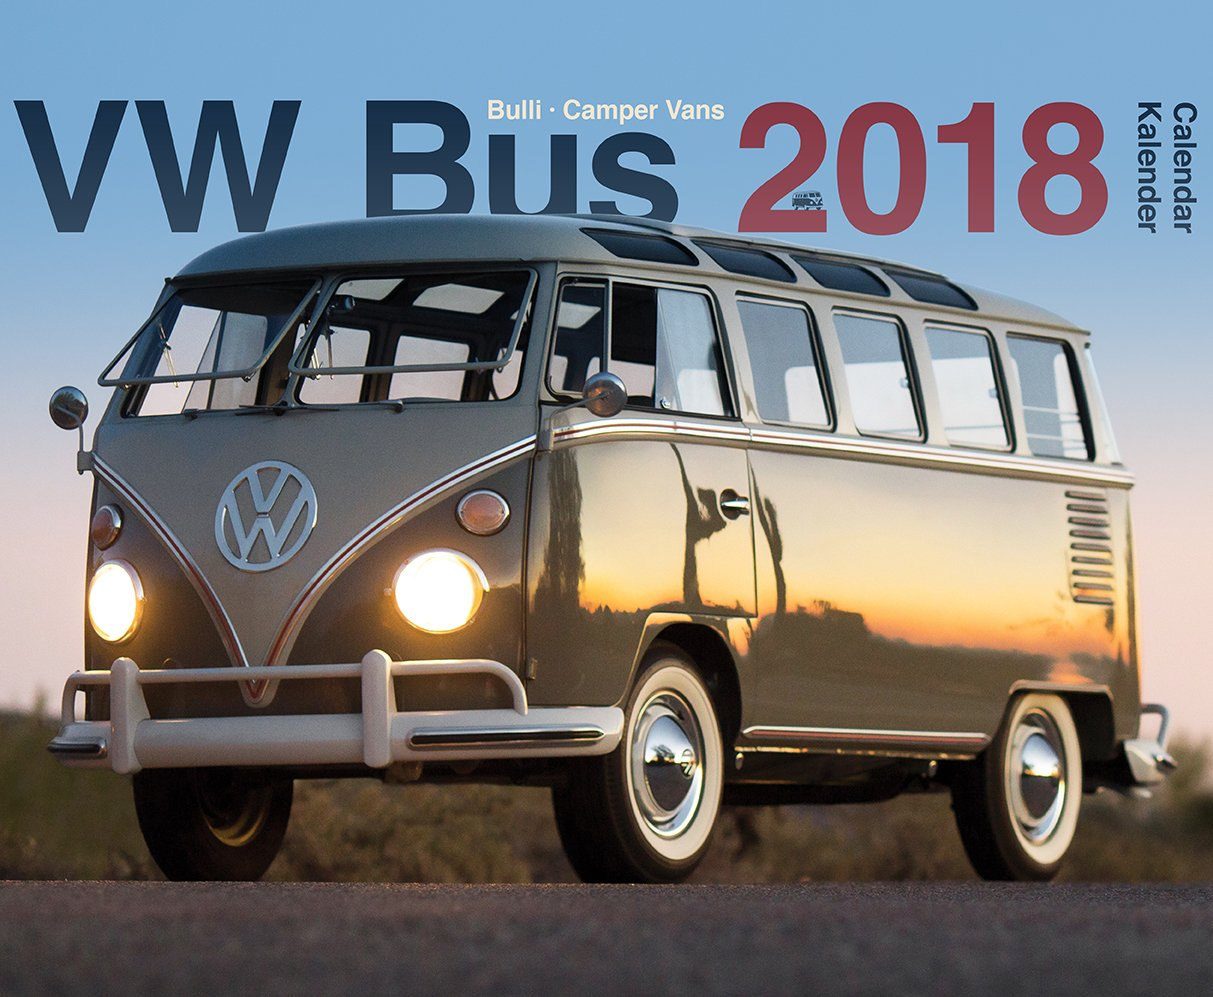 Vw Bus 2018 >> Vw Bus Bulli 2018 9781617015854 Amazon Com Books